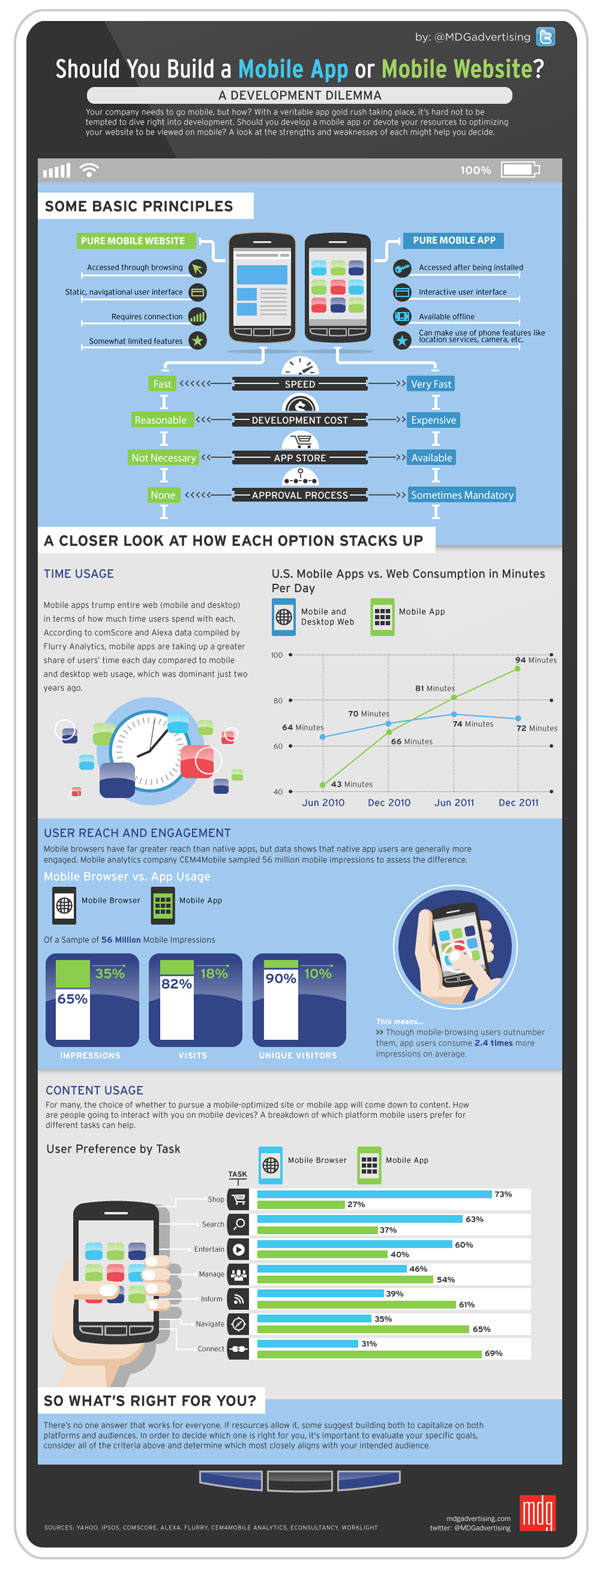 should you build a mobile app or mobile website infographic Should You Build a Mobile App or Mobile Website? [Infographic]